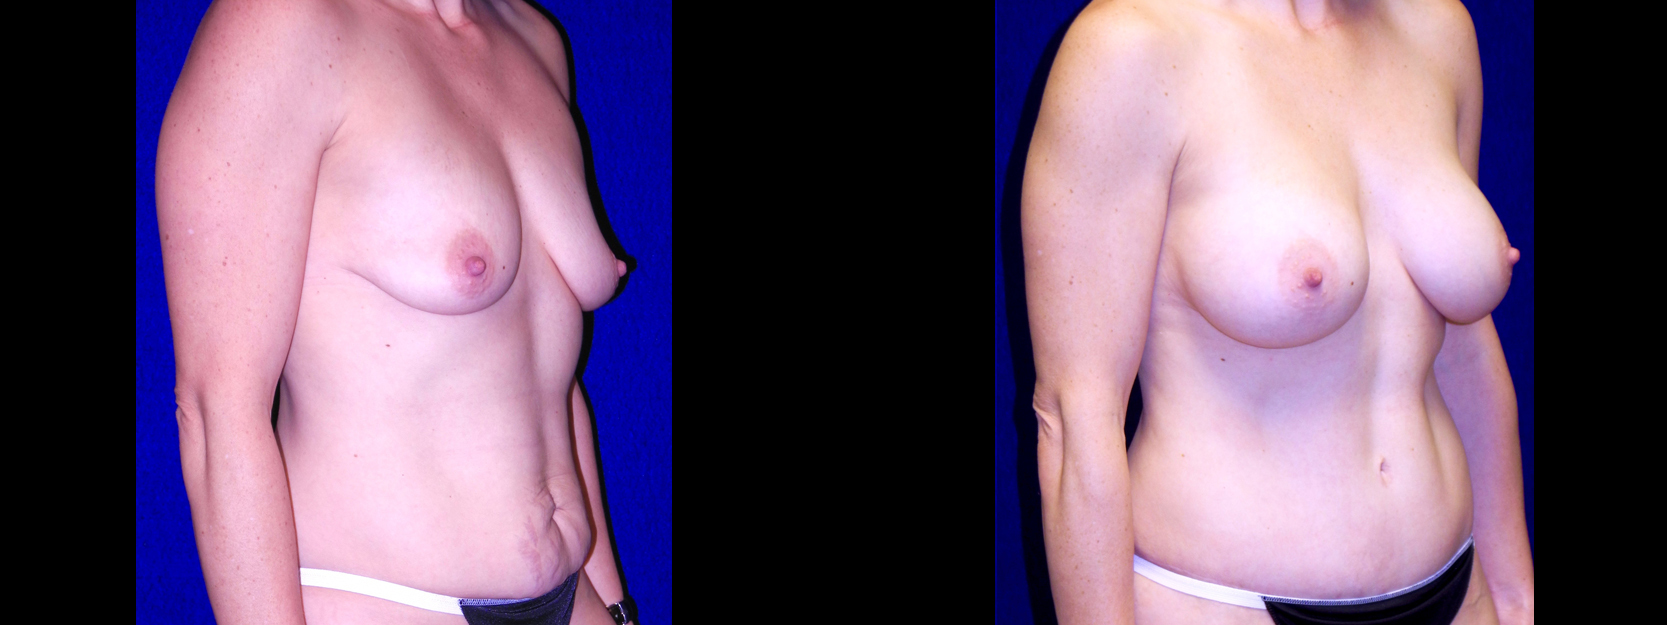 Right 3/4 View - Breast Augmentation & Tummy Tuck